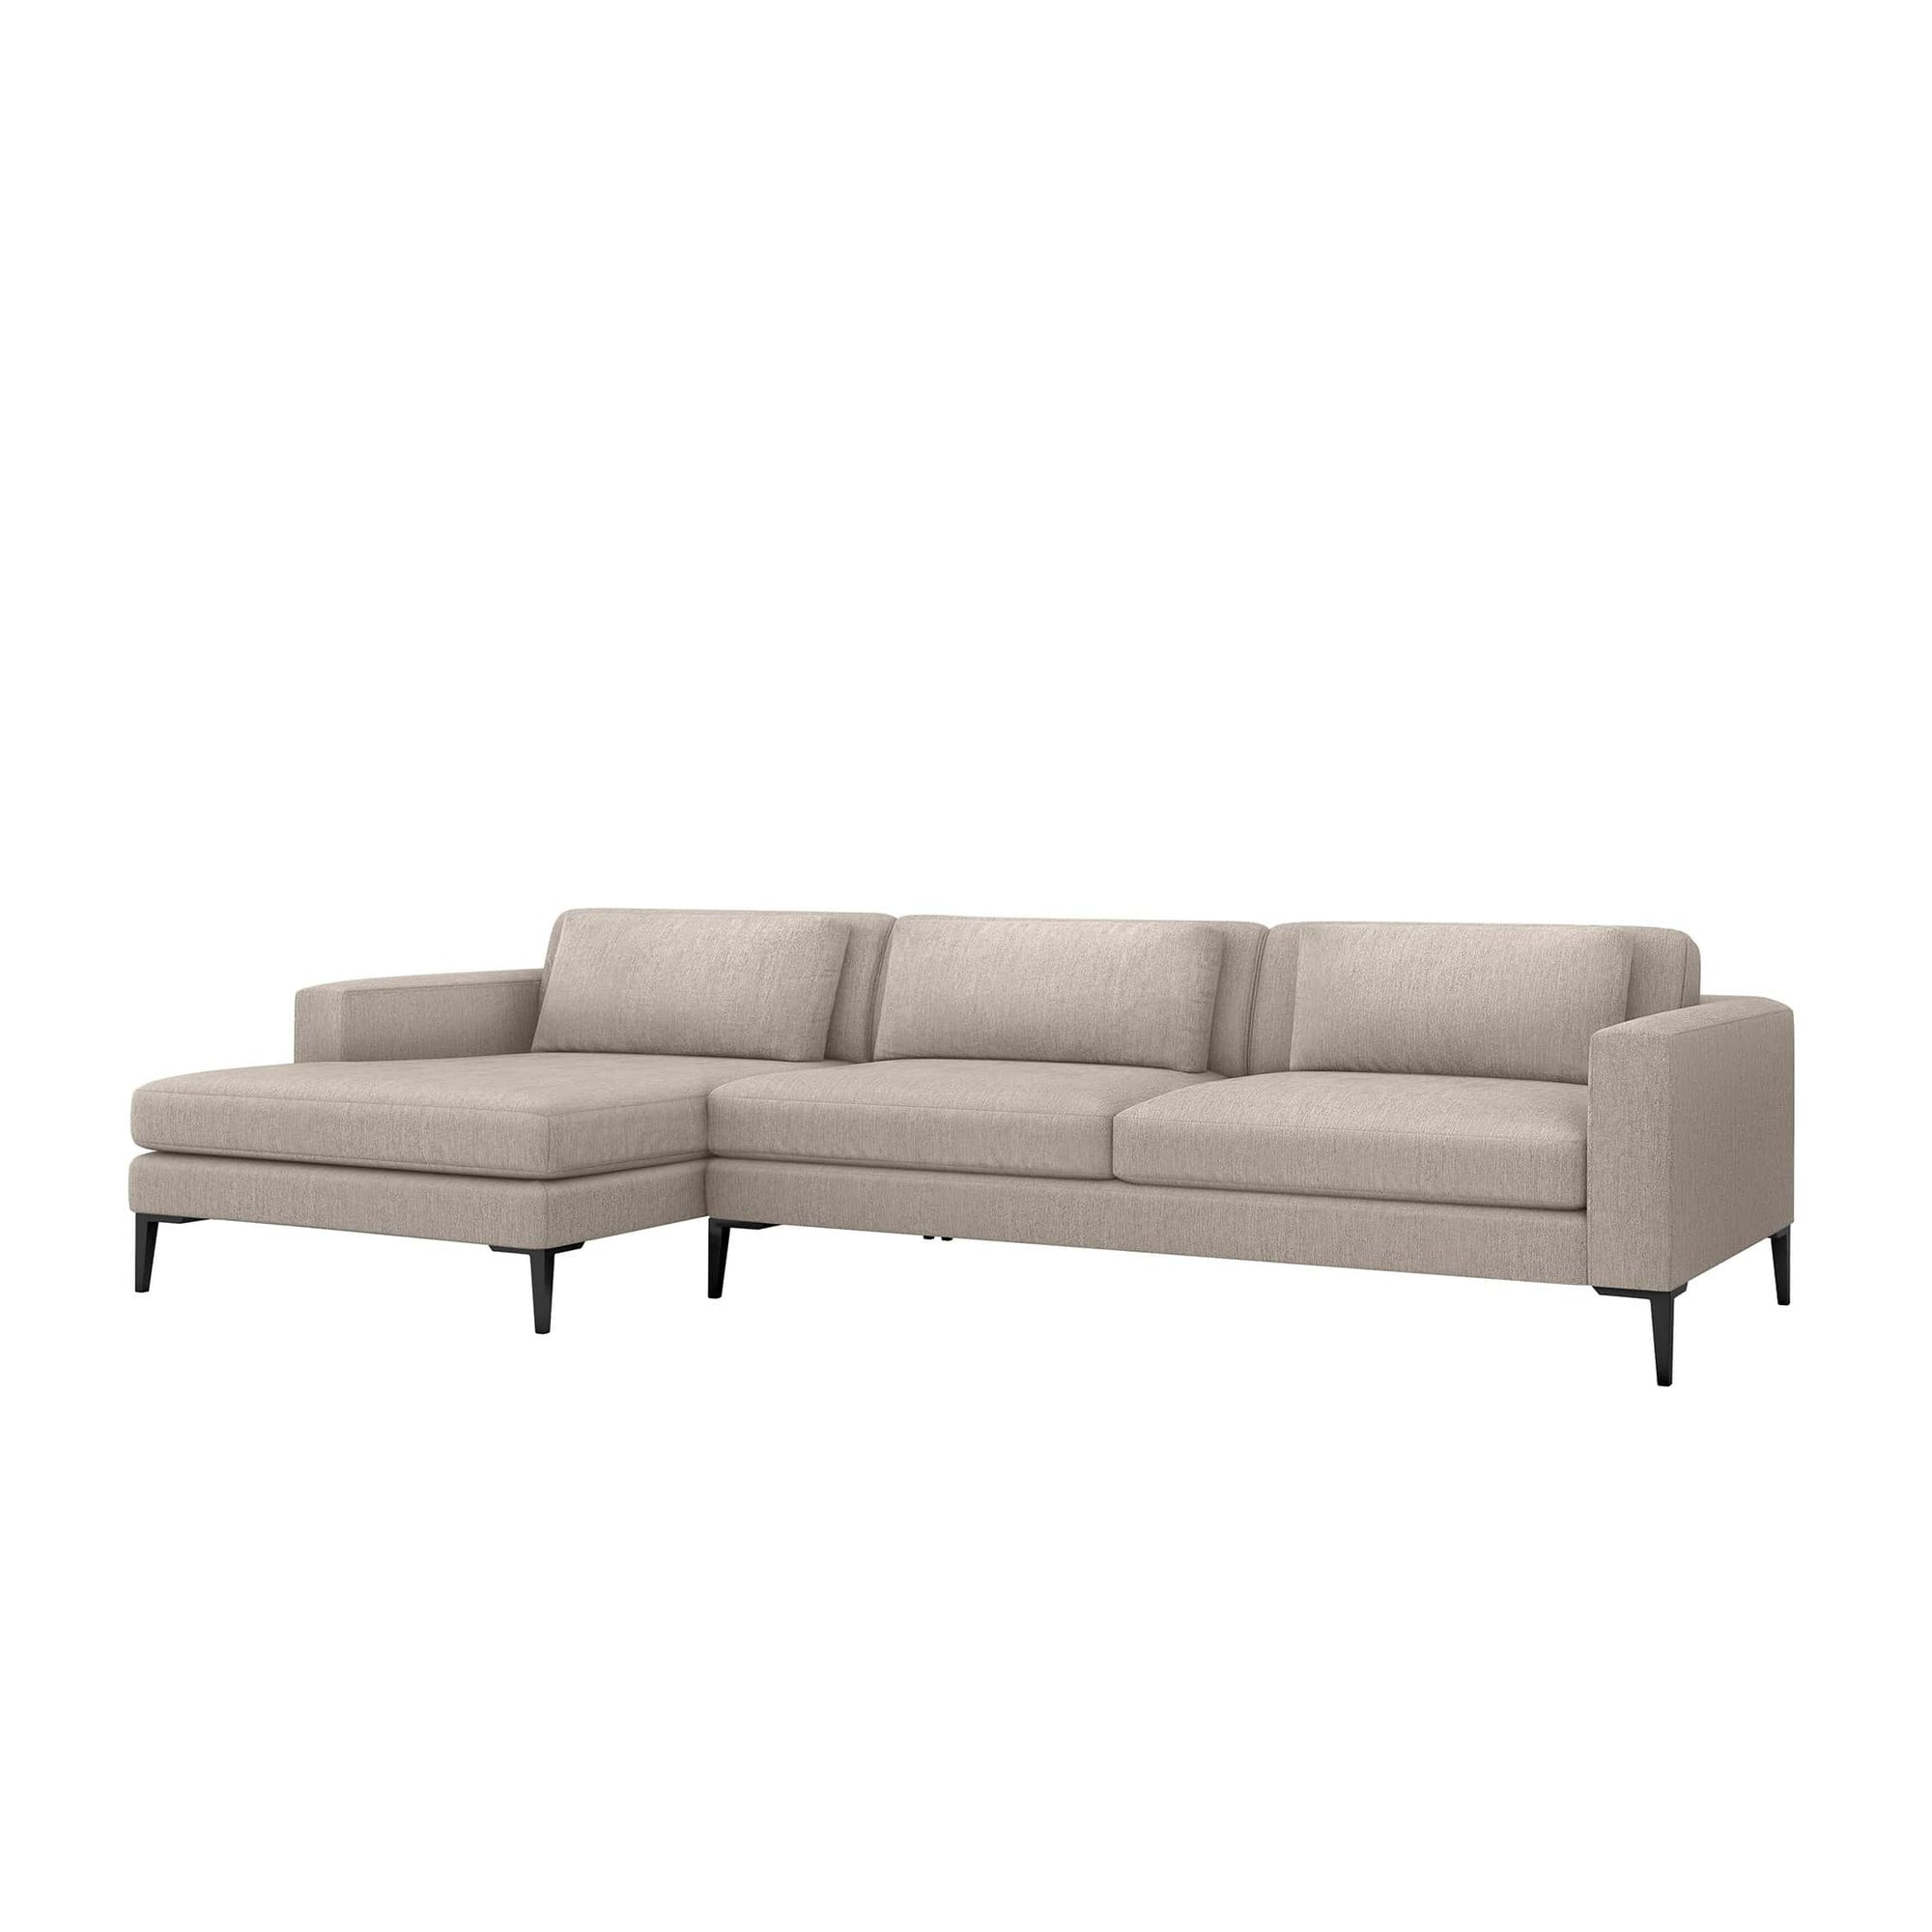 Interlude Home Interlude Home Izzy Left Chaise 2 Piece Sectional - Light Brown 199015-2